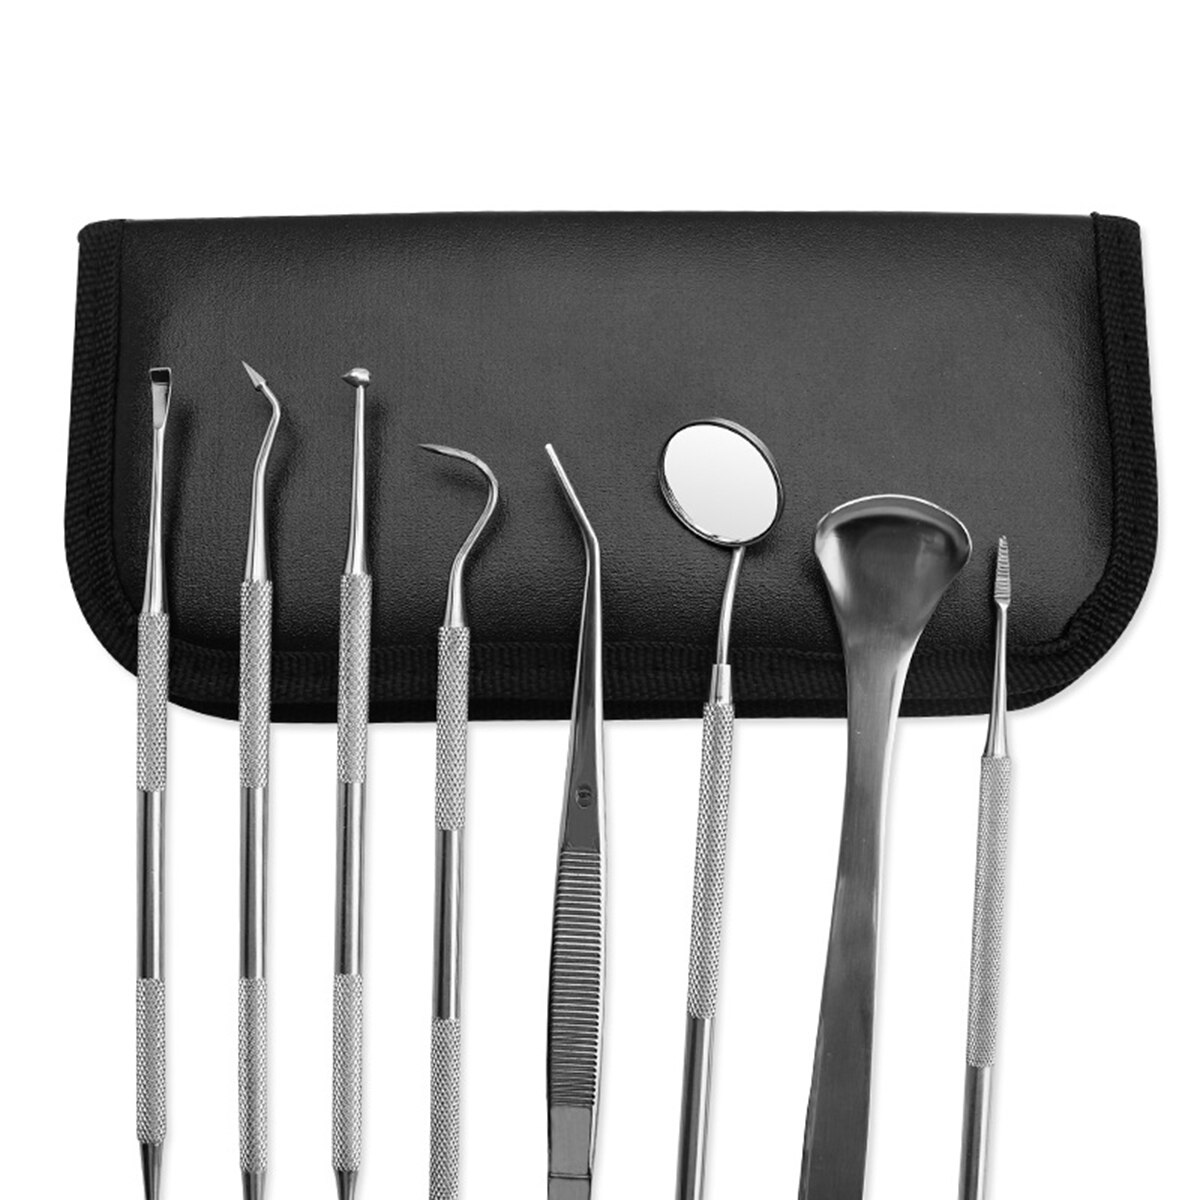 8pcs Pet Dog Tool Kit Stainless Steel Teeth Cleaning Oral Care Set With Tooth Scraper Tartar Tweezers Mouth Mirror